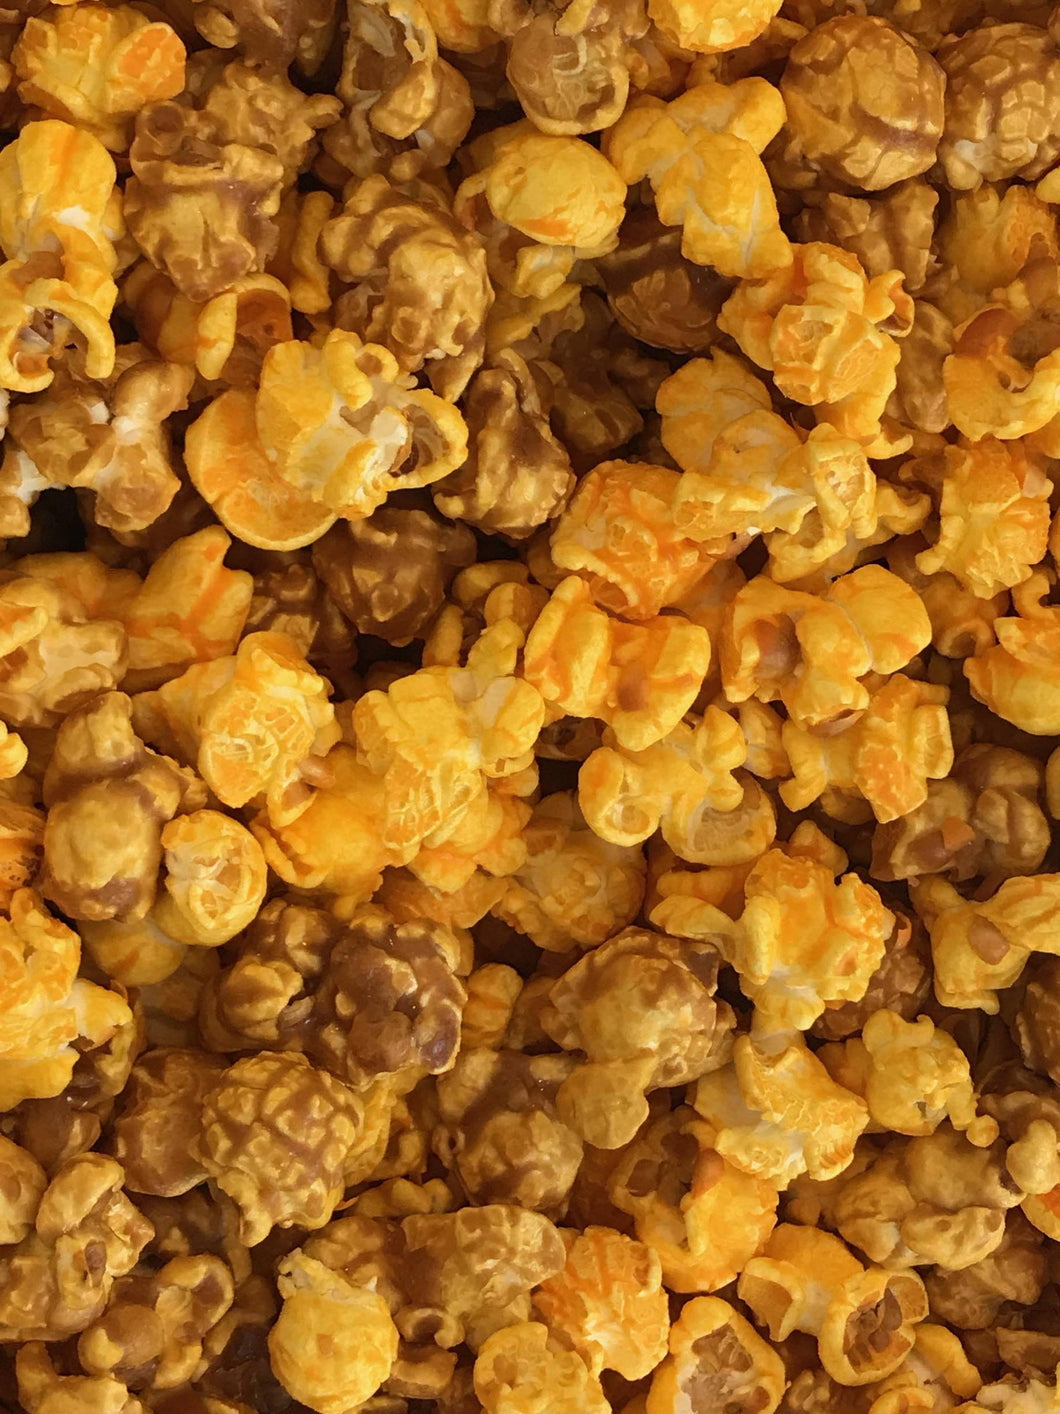 The Kernel's Mix